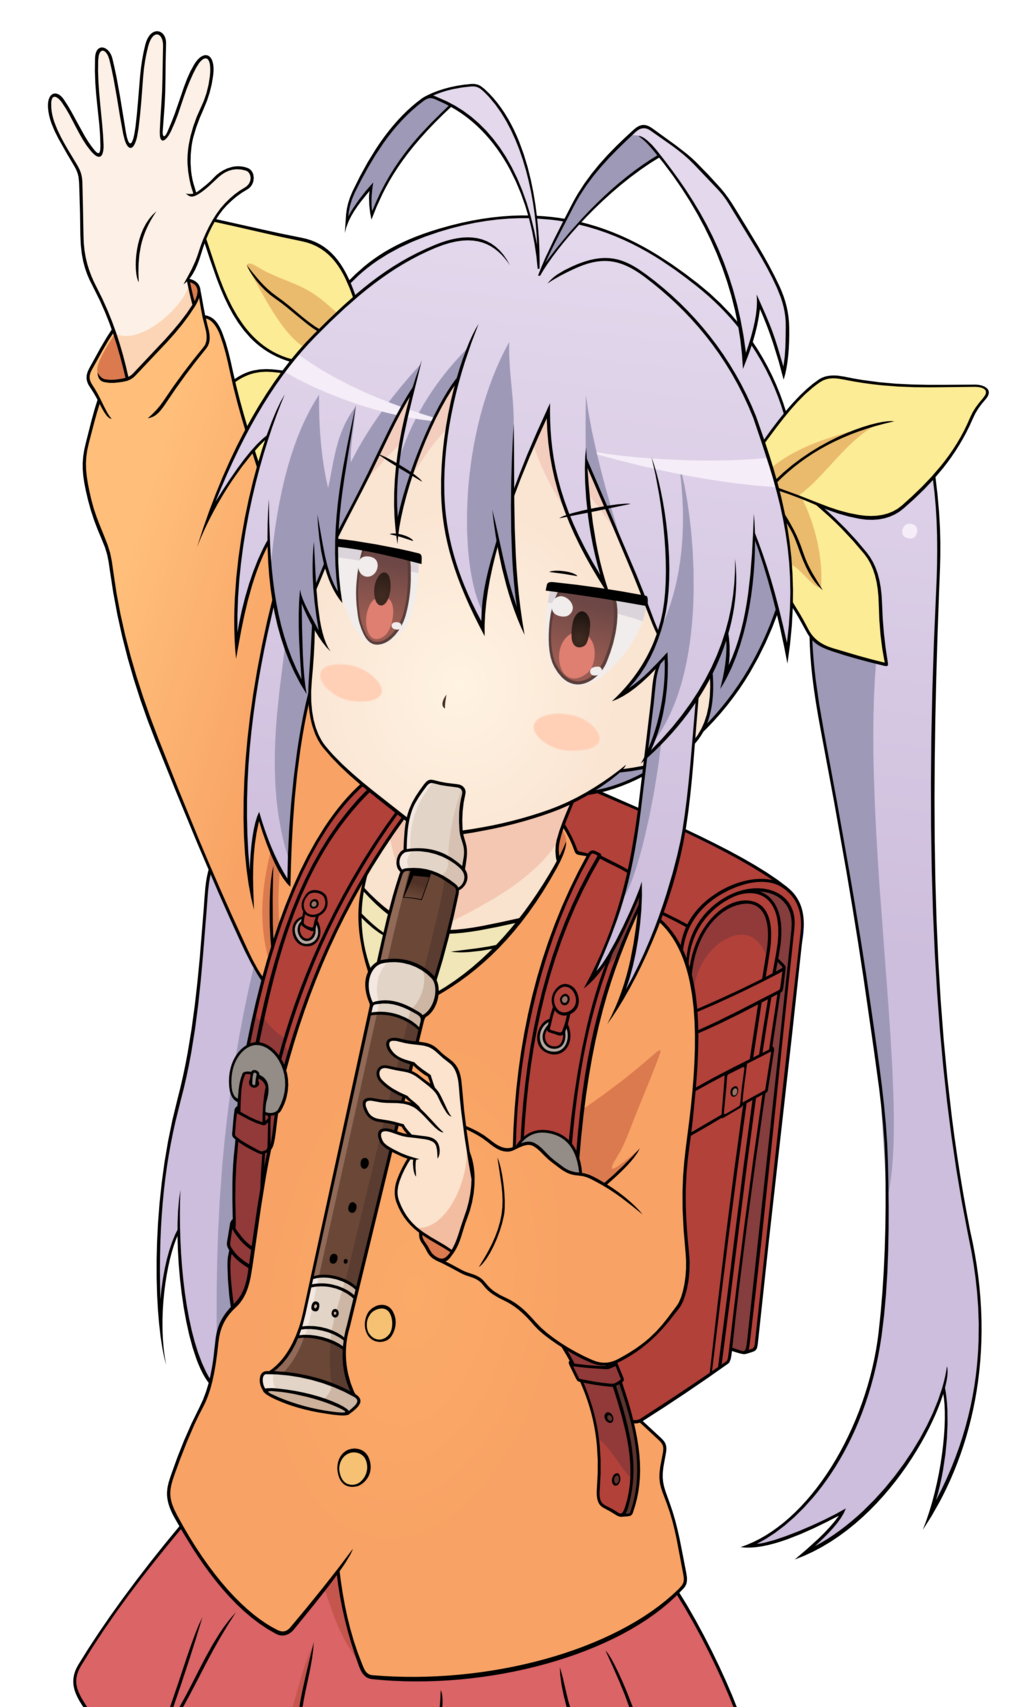 backpack bag blush blush_stickers instrument ironanjuu long_hair miyauchi_renge non_non_biyori purple_hair randoseru recorder red_eyes school_uniform simple_background skirt tied_hair twintails waving white_background